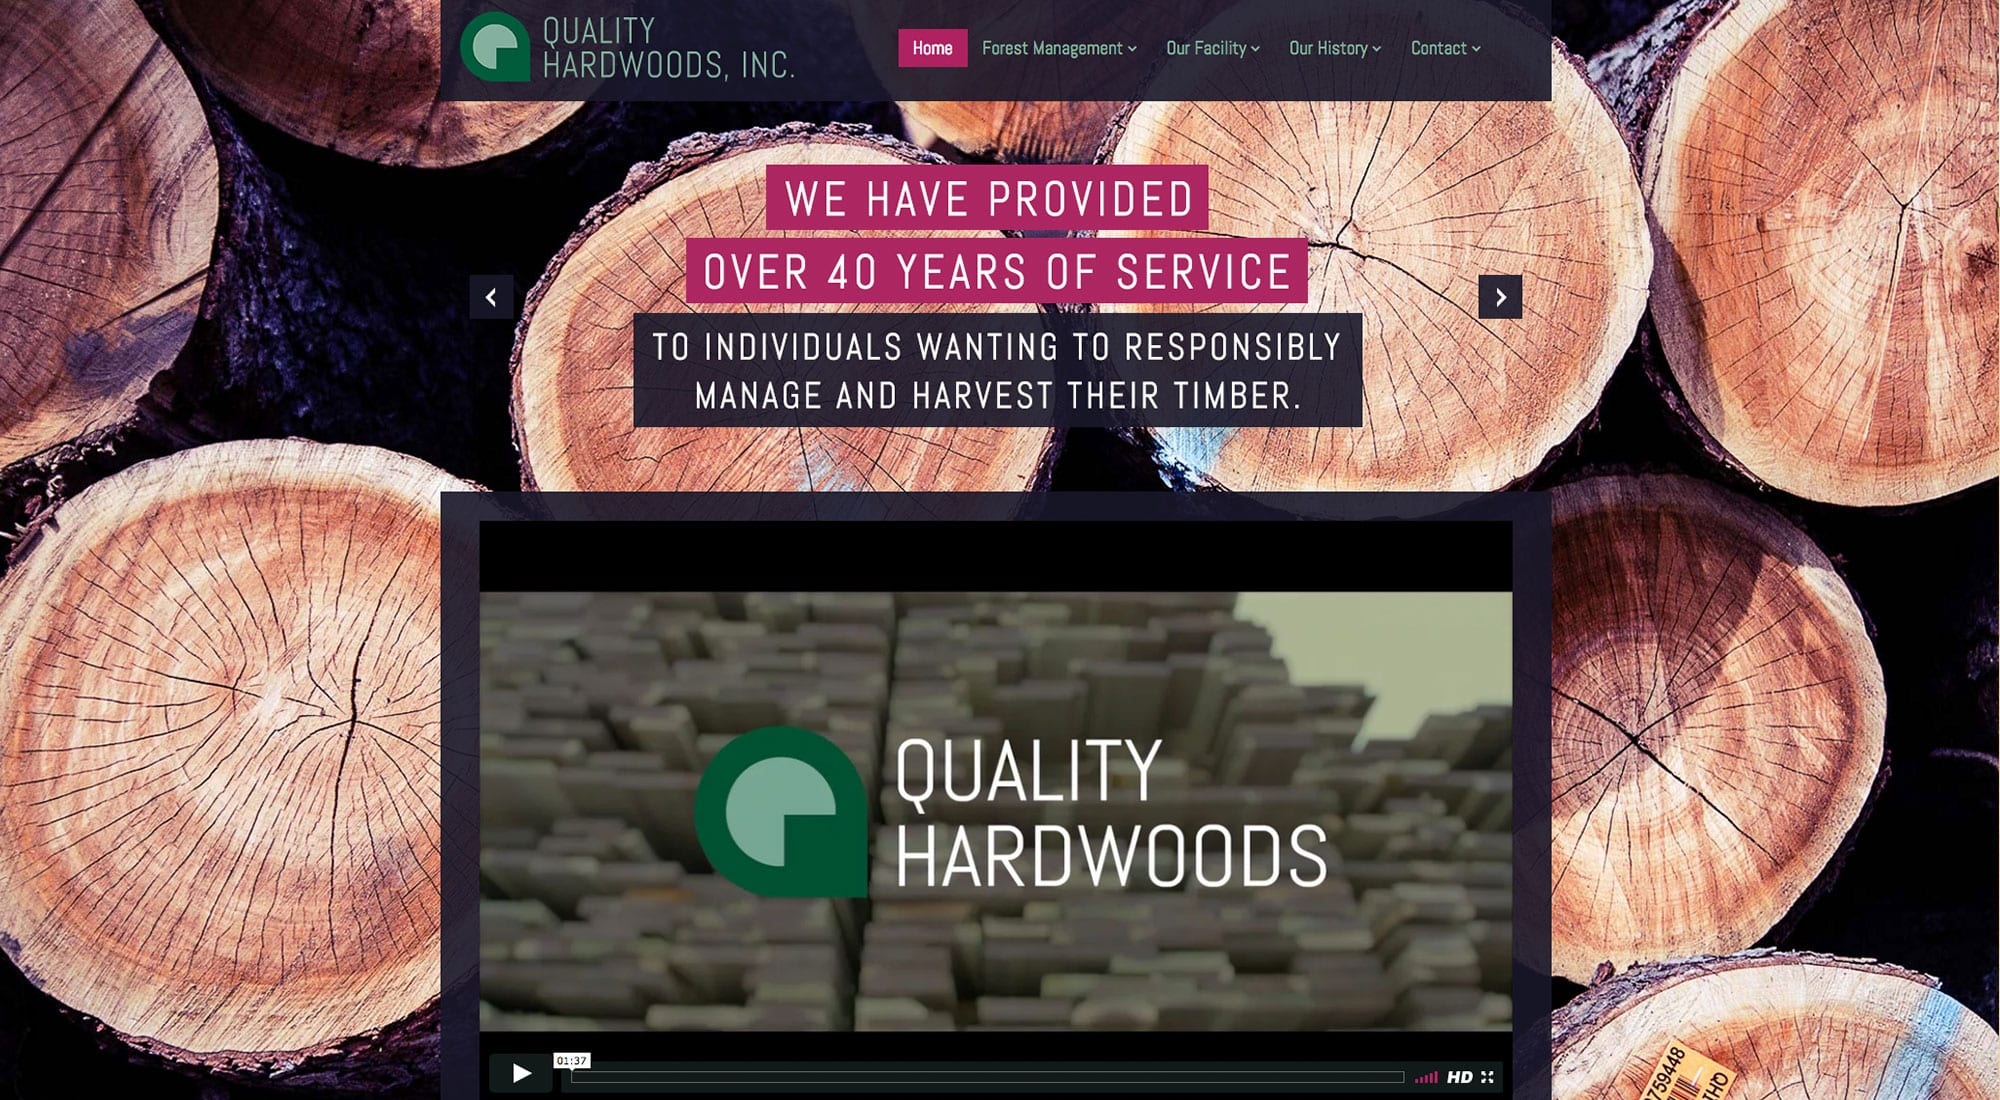 Quality Hardwoods Website Design by Pixelvine Creative